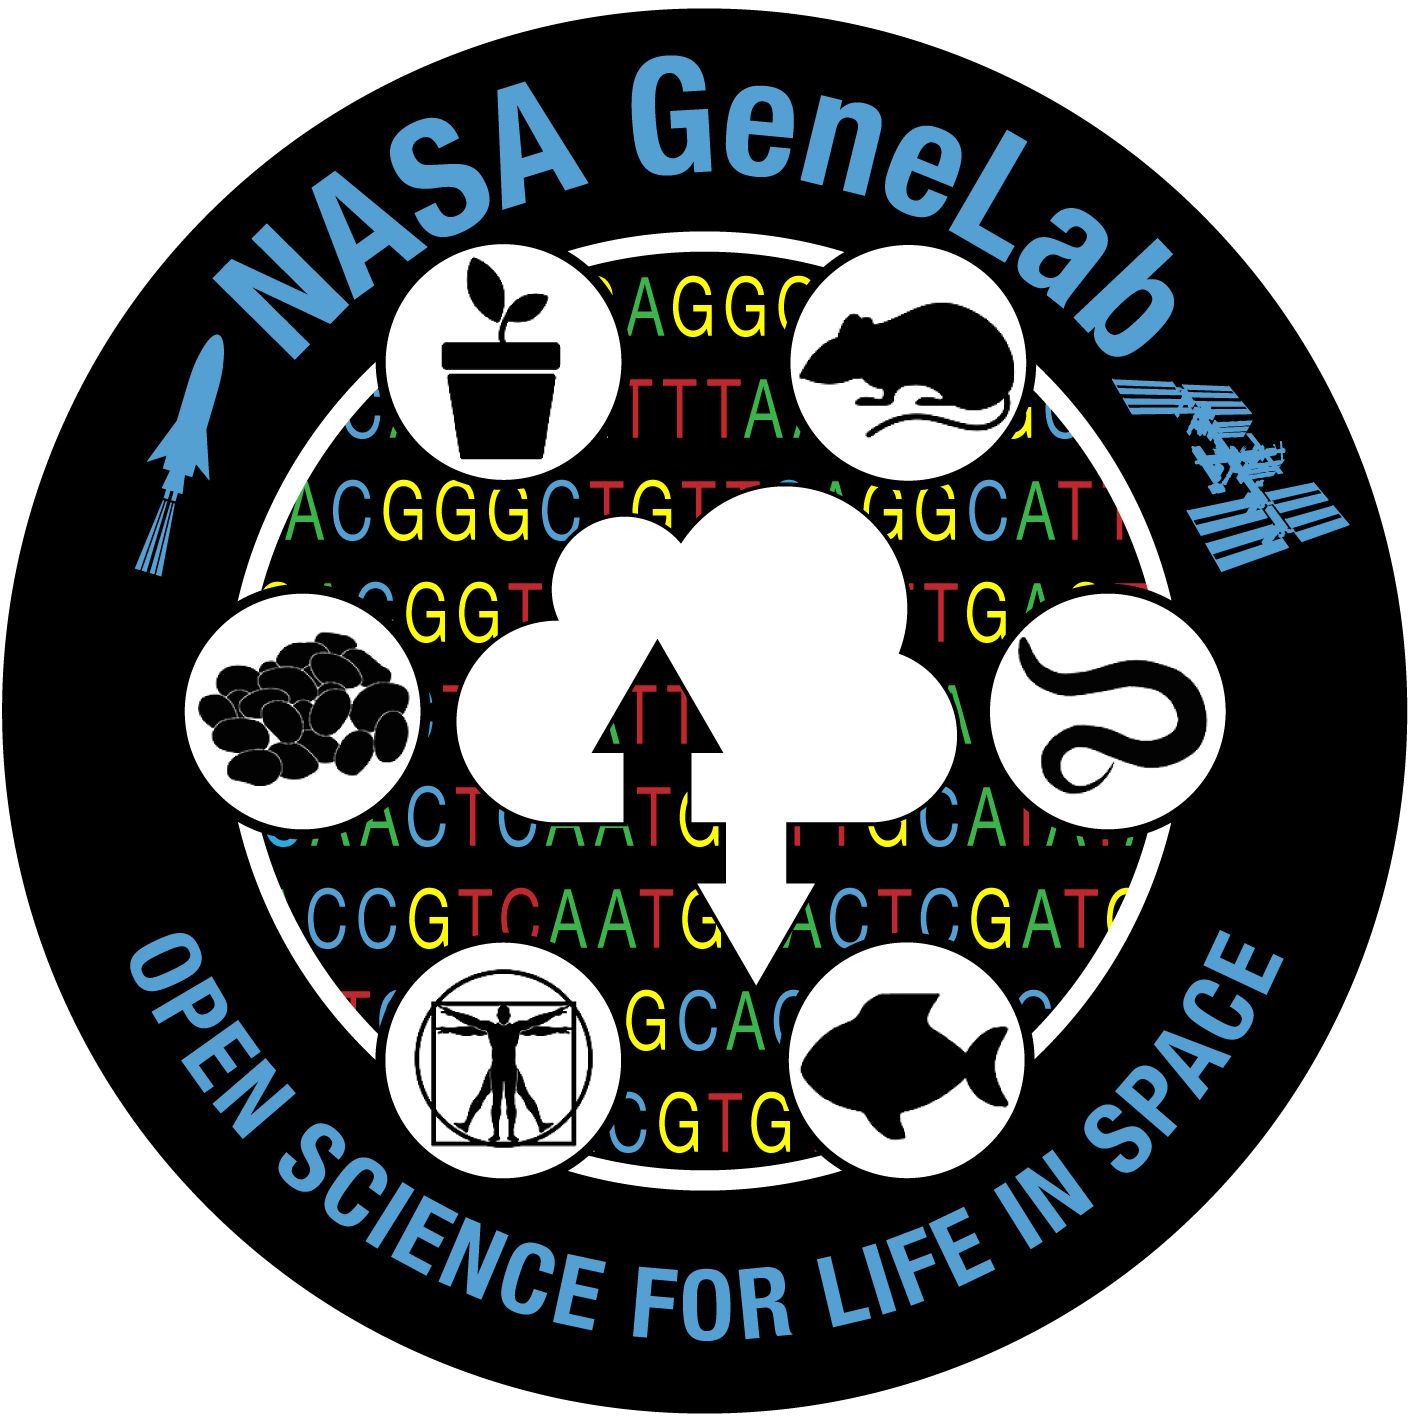 NASA GeneLab – Open Science for Life in Space